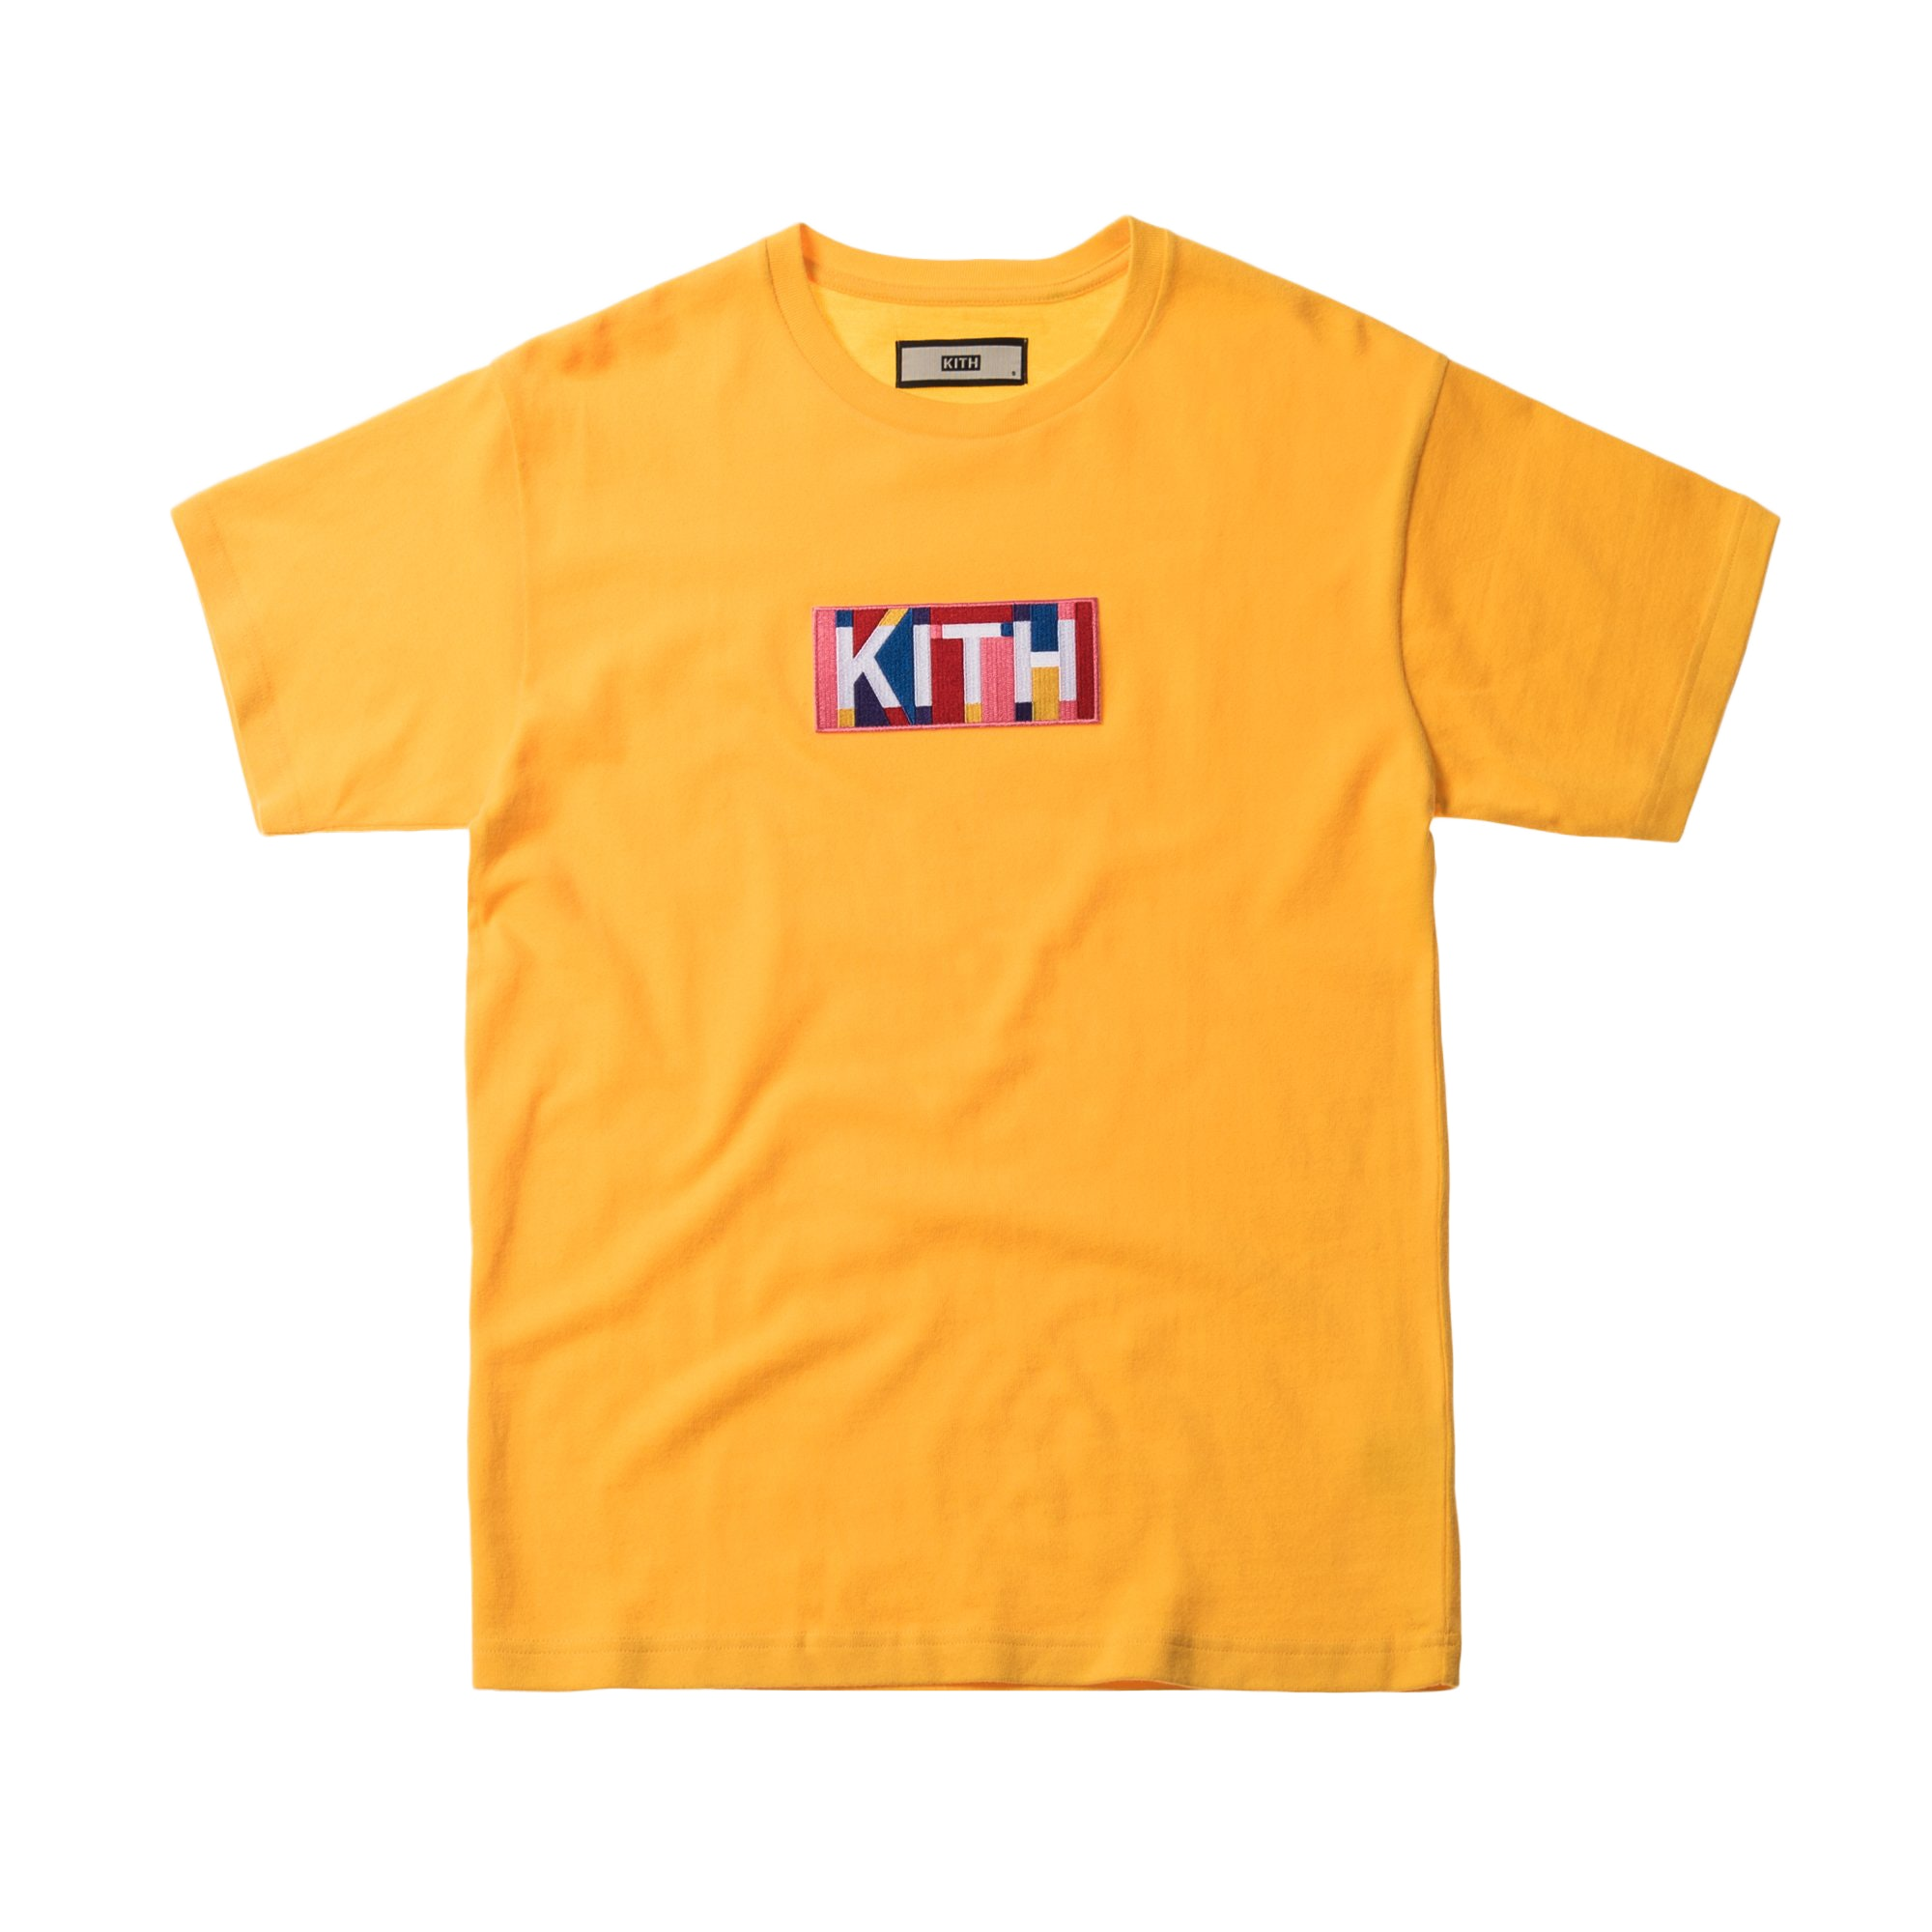 Kith Geo Colors Tee Yellow